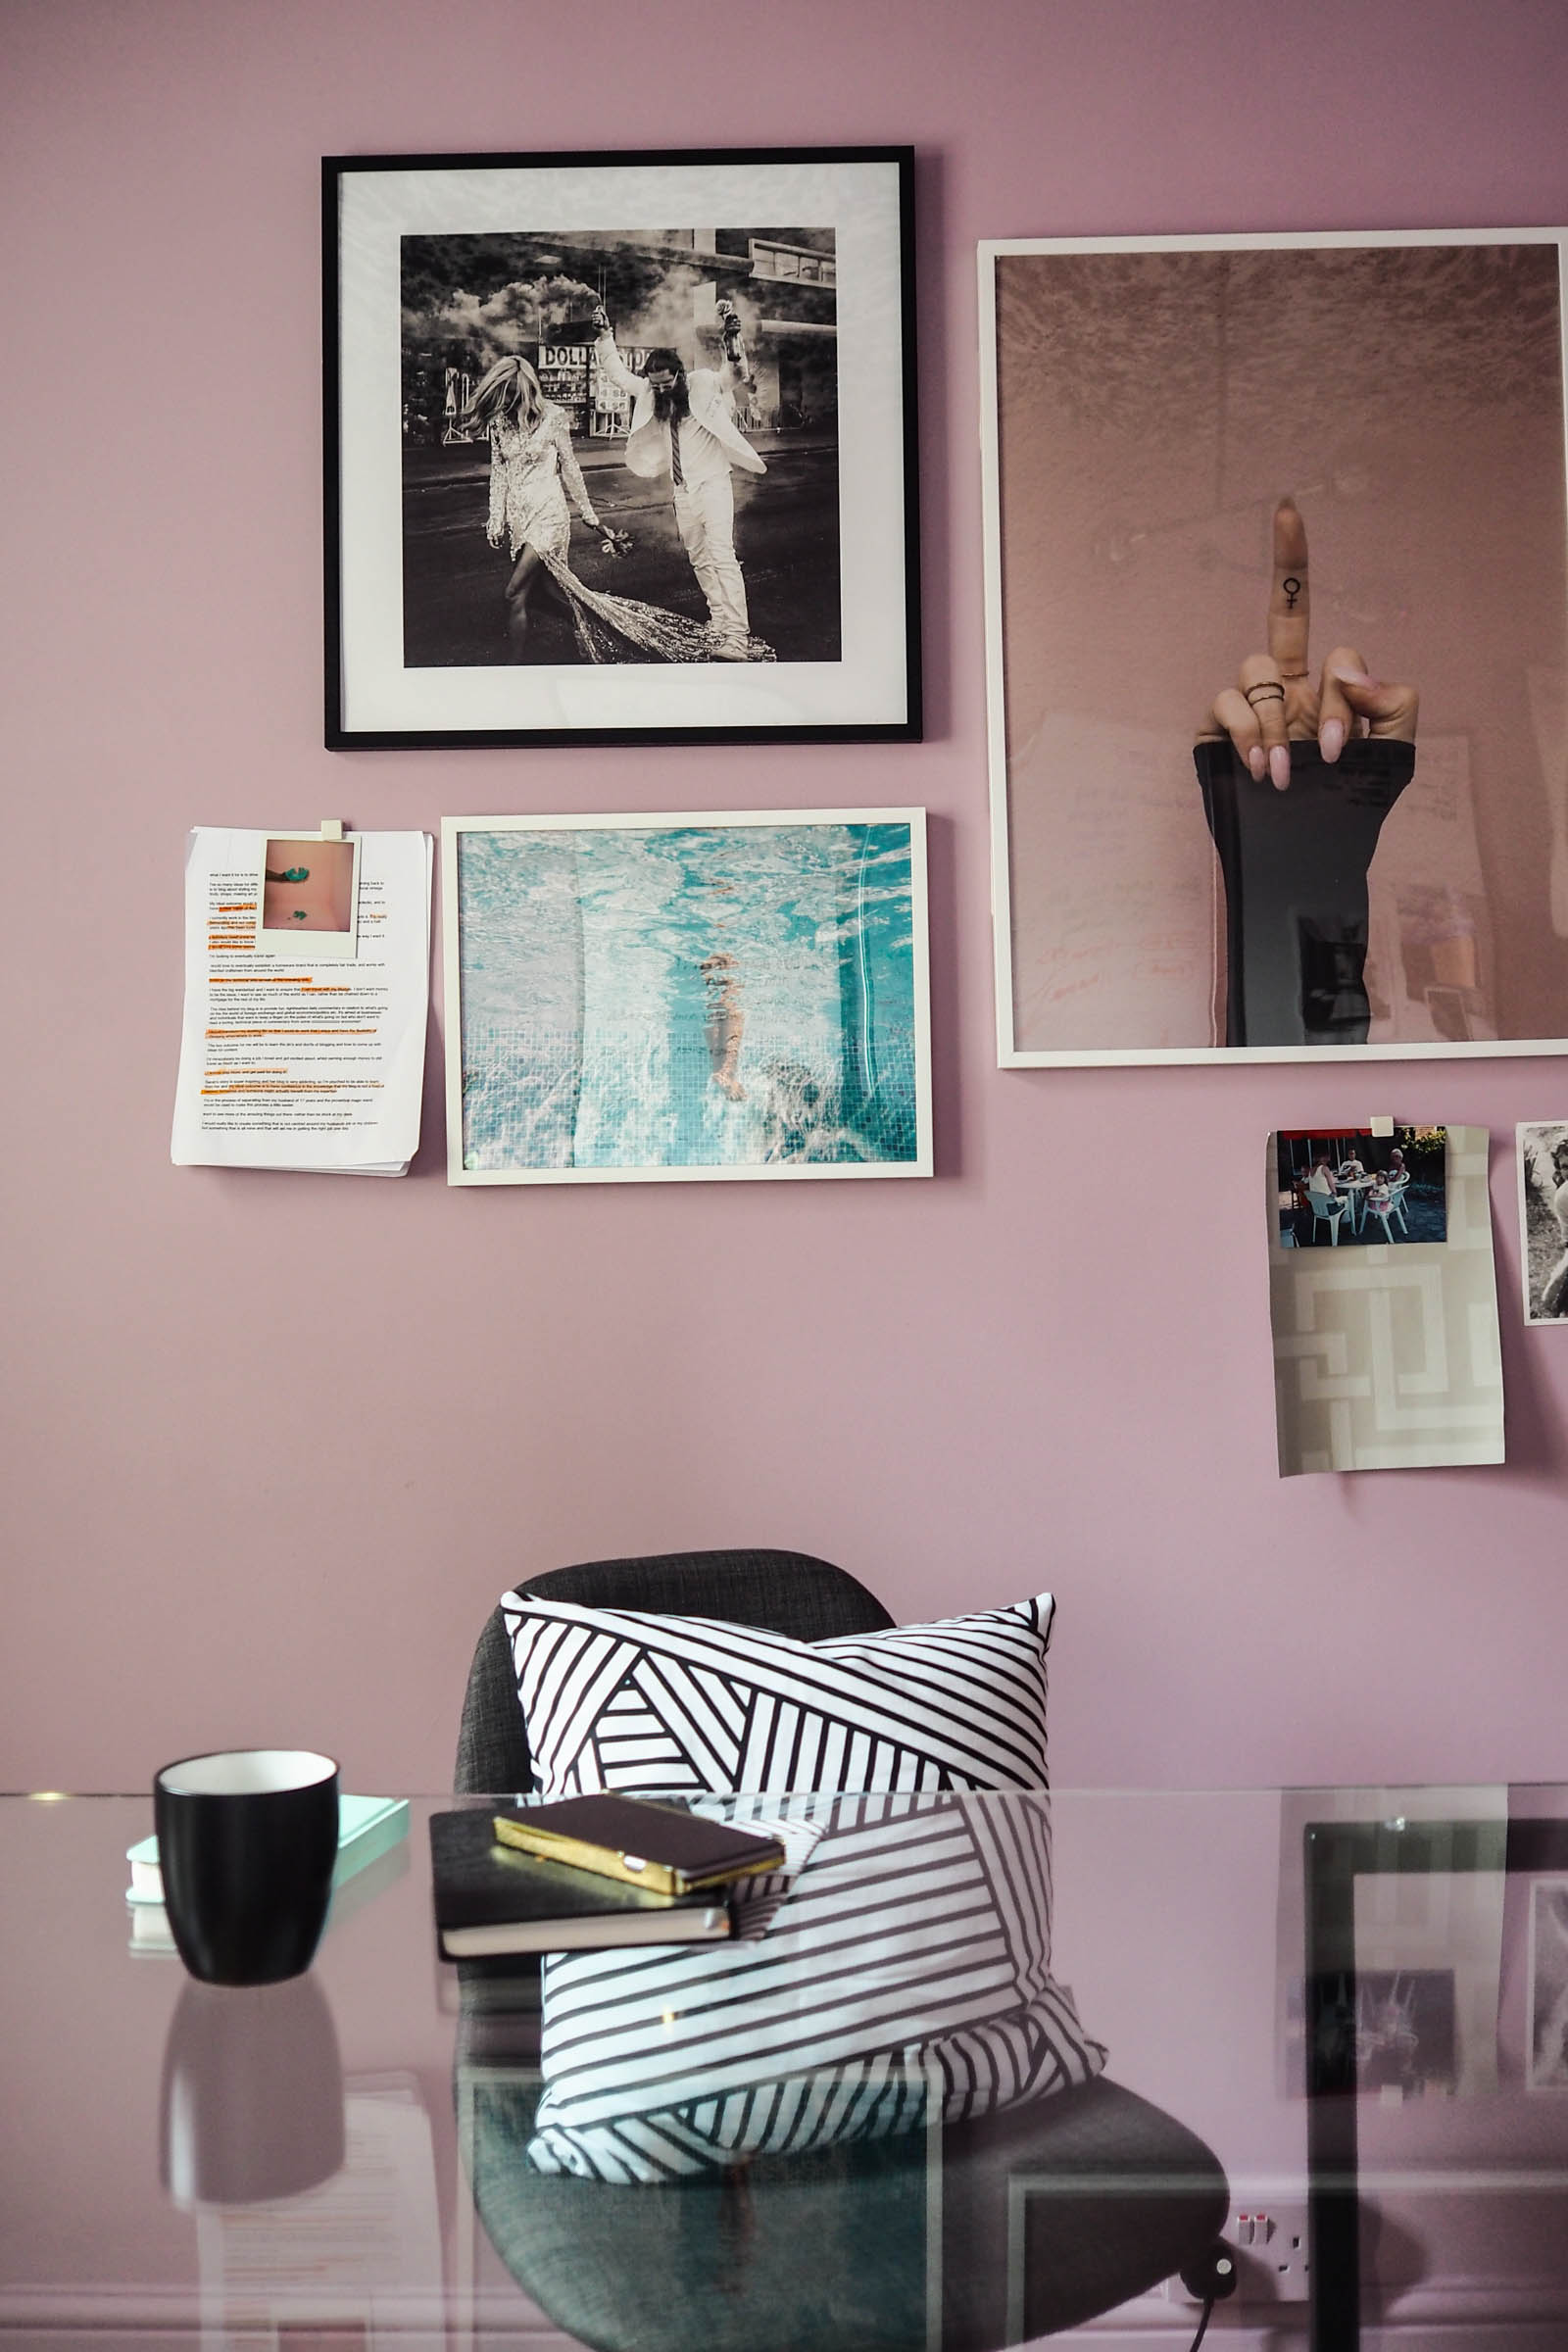 Blogger Sarah Akwisombe's lavender, black and brass room makeover might give you some cool office design ideas!